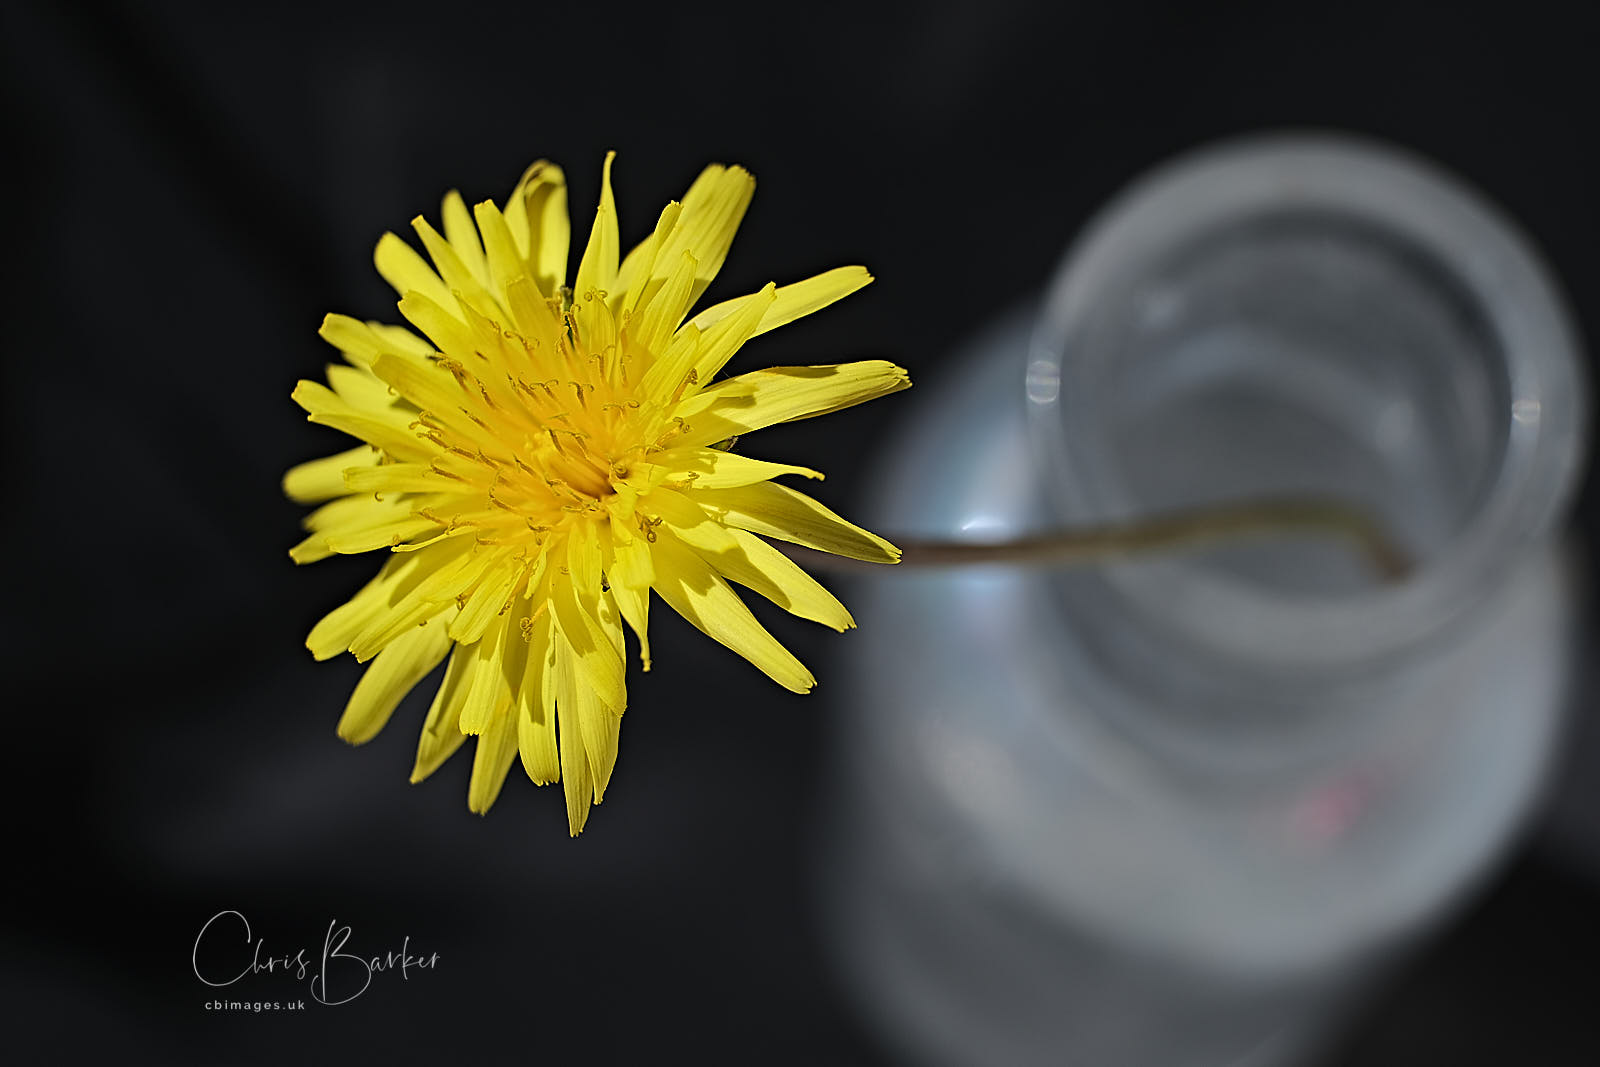 Dandelion flower in a glass jar